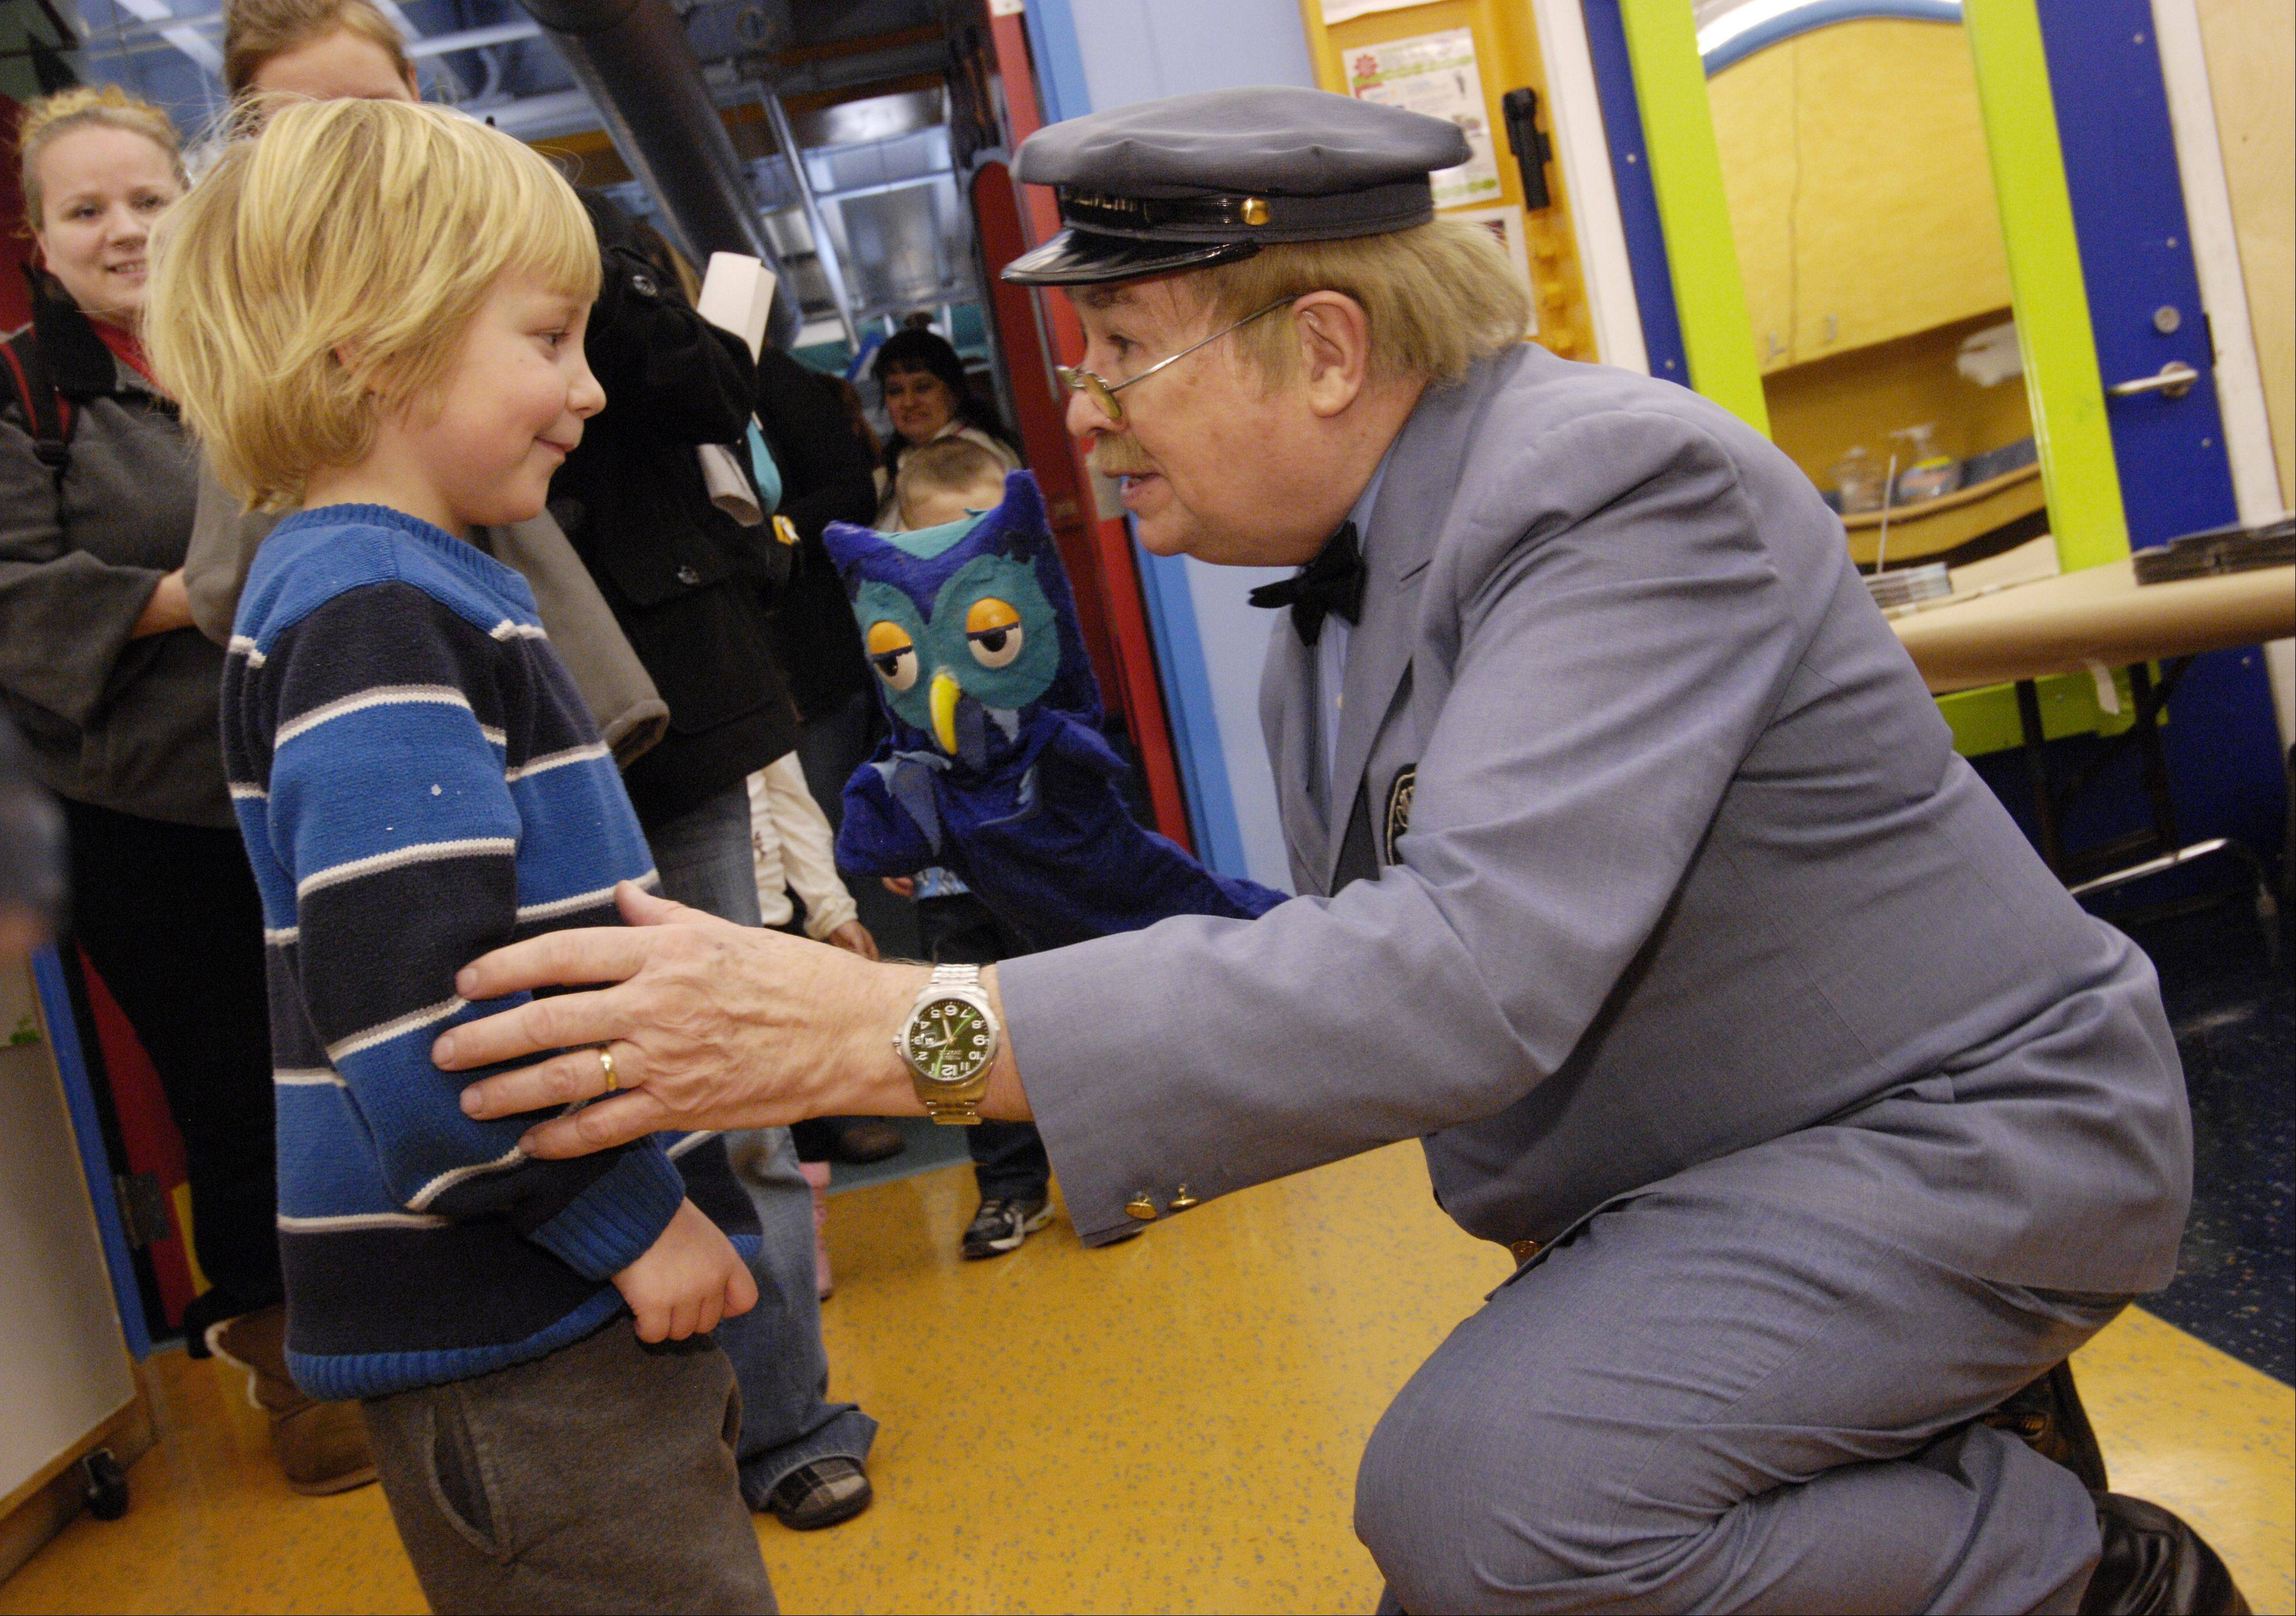 Mason Beckemeire, 5 of Naperville meets David Newell, �Mr. McFeely� the Speedy Delivery man from the children�s TV show �Mr. Rogers� Neighborhood� and X the owl at the DuPage Children�s Museum during a kick off a sweater drive, Sunday.